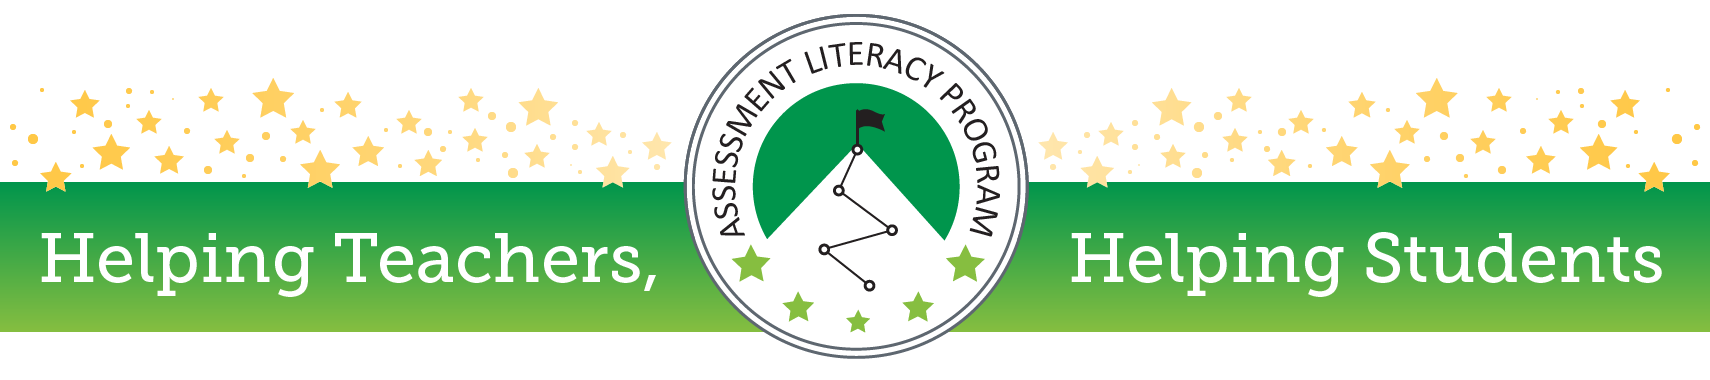 2017 CO Assessment Literacy Program Web Banner